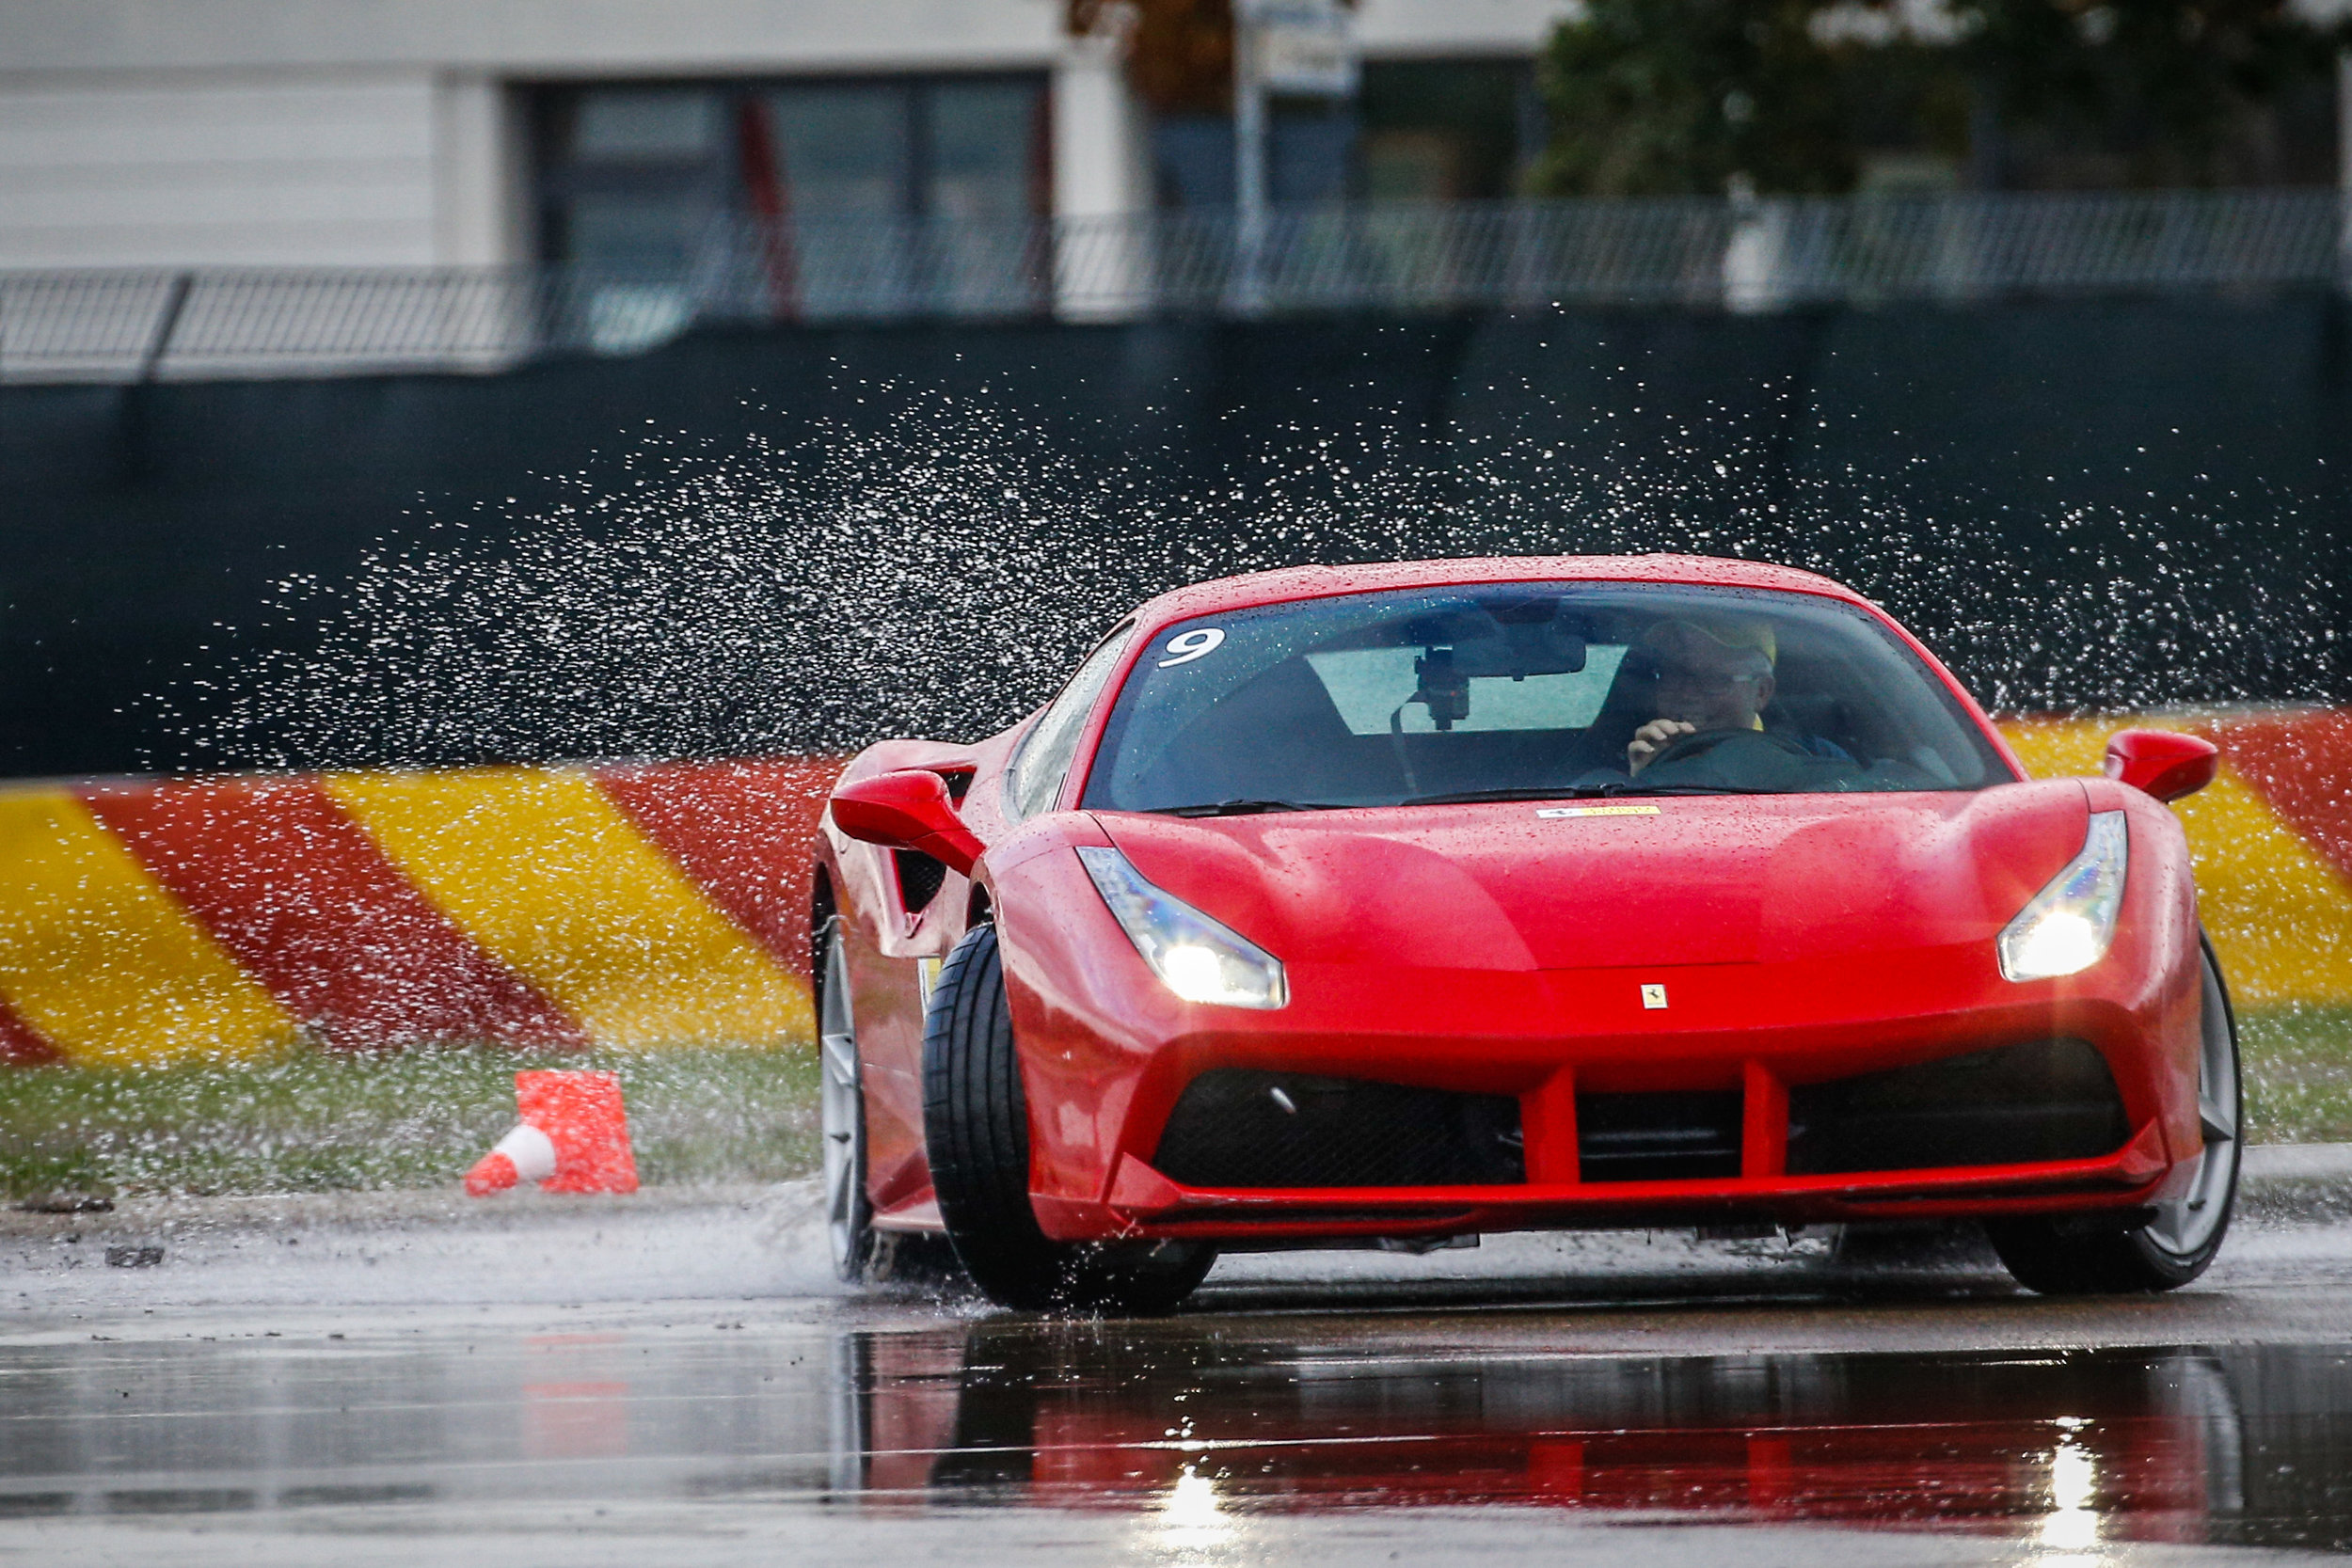 On the skid pad with the 488 Italia.